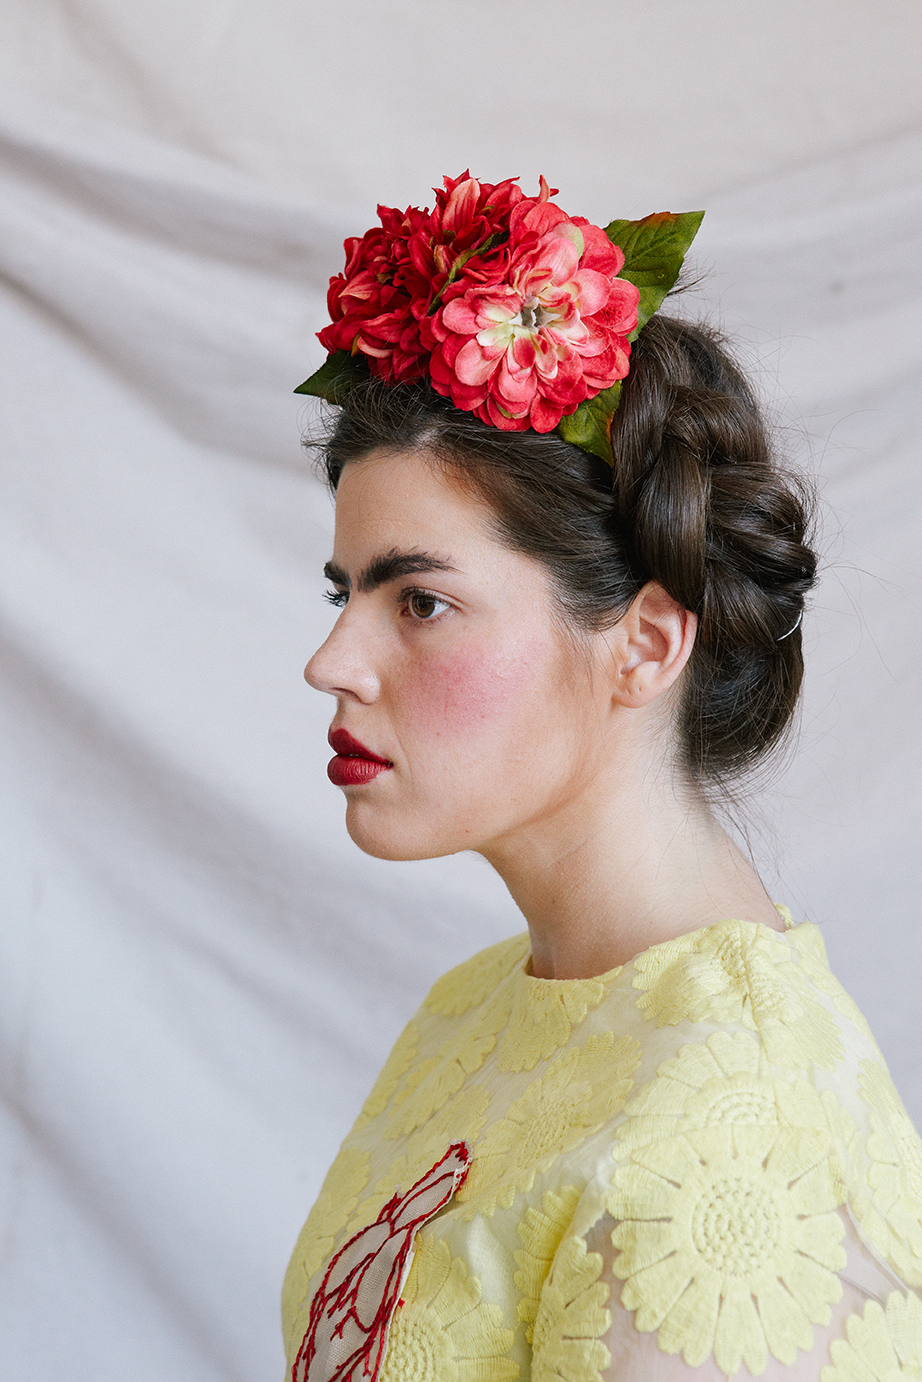 Diy Frida Kahlo Beauty Tutorial Video The House That